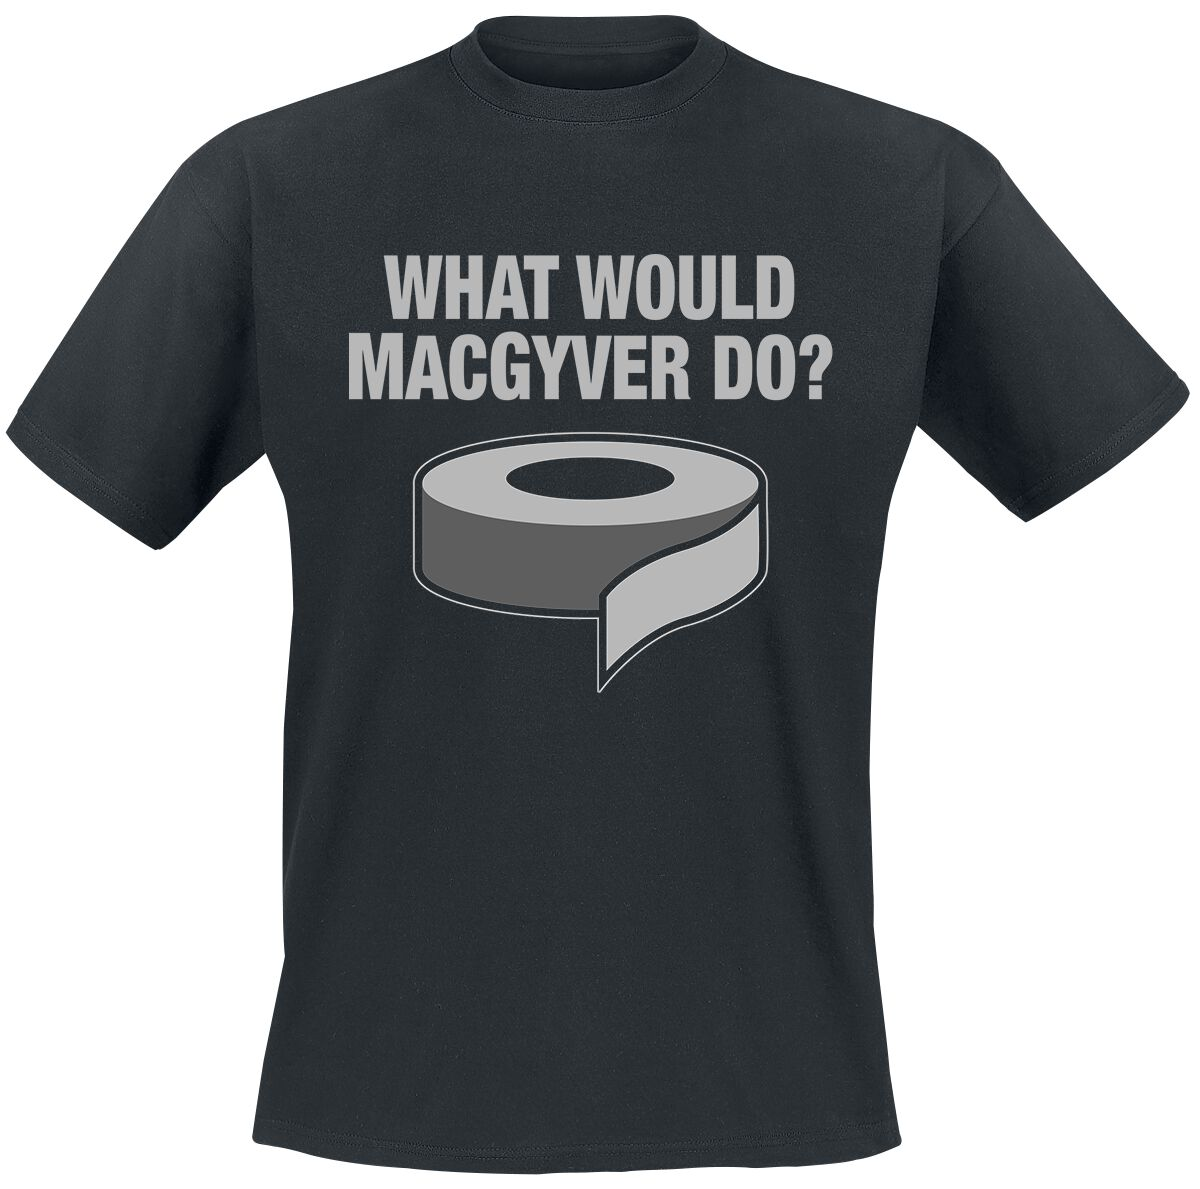 MacGyver What Would MacGyver Do? T-Shirt schwarz CBS-1-MG 005-H4- 10-BK-M